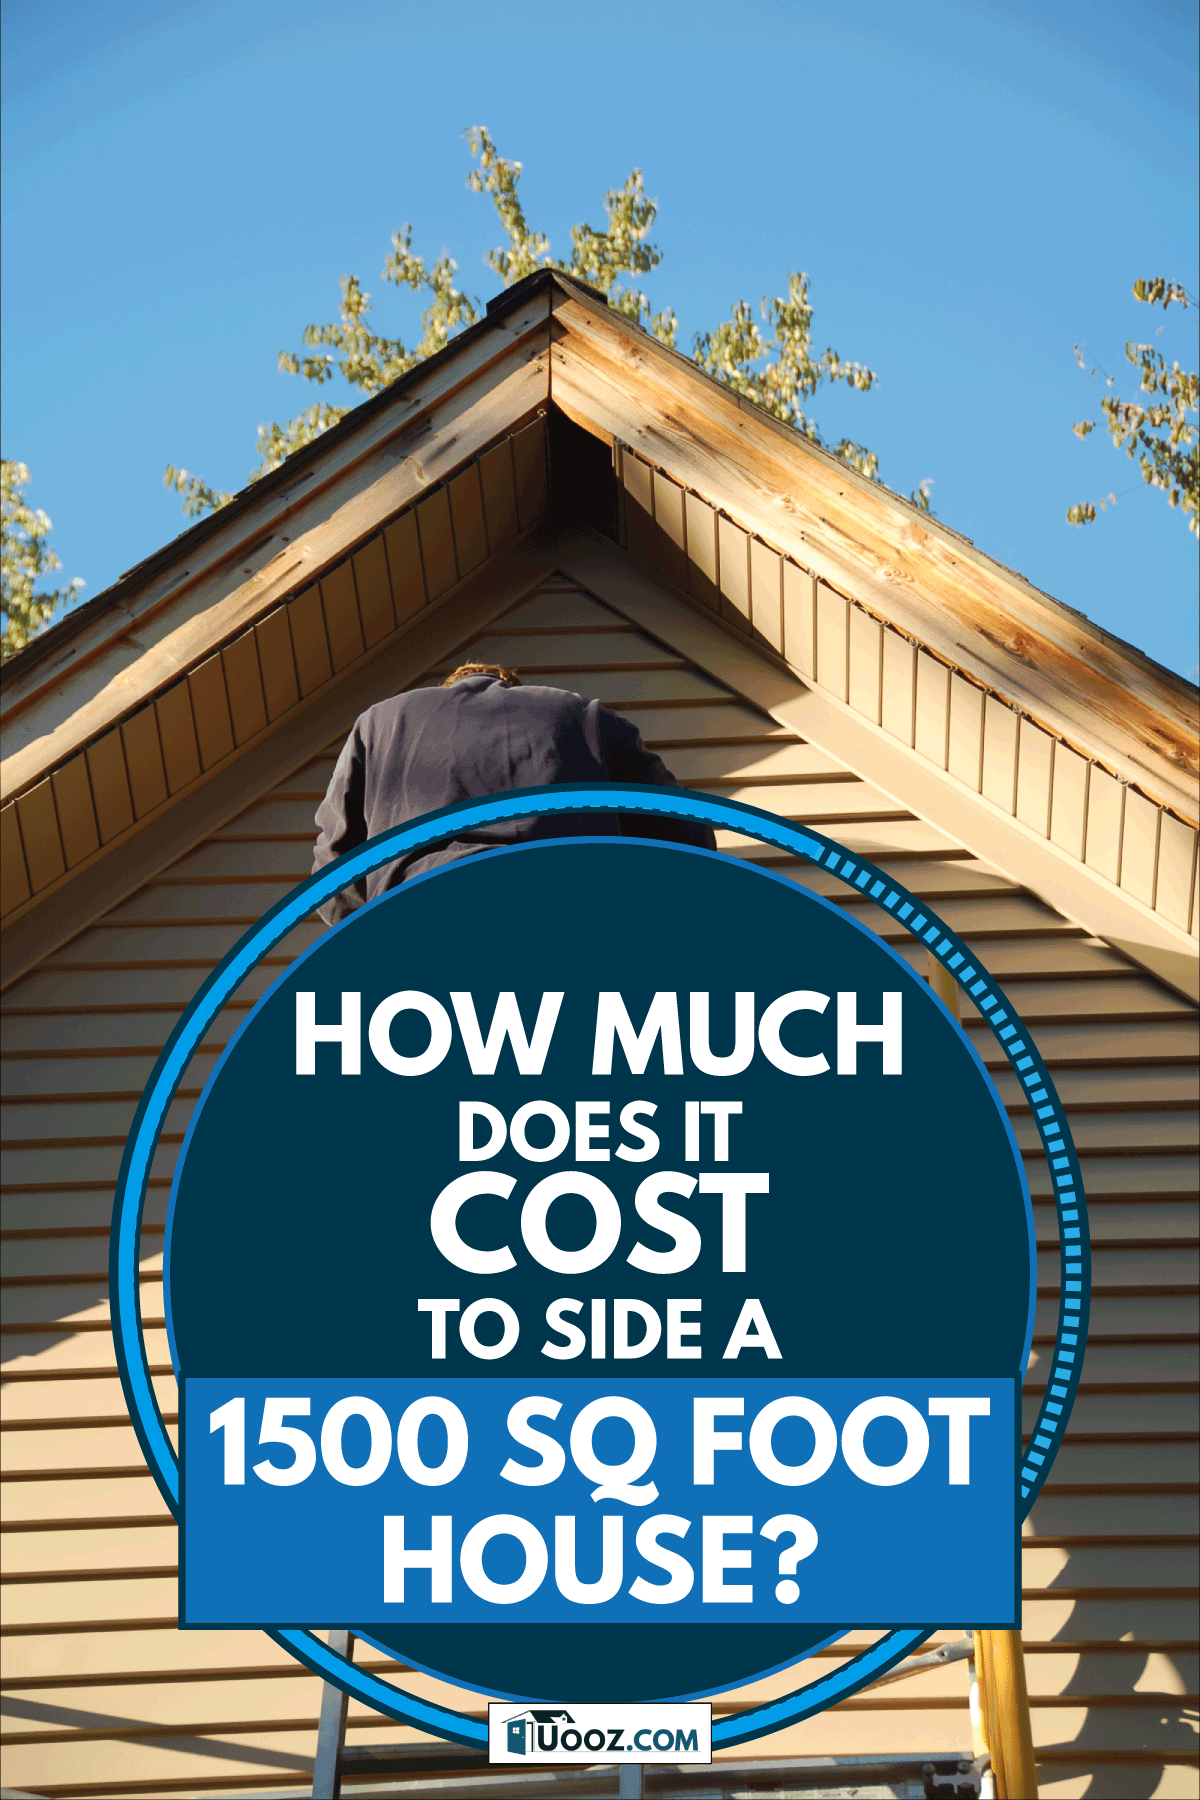 Man on top of a ladder installs side walling to the side of a house, How Much Does It Cost To Side A 1500 Sq Foot House?